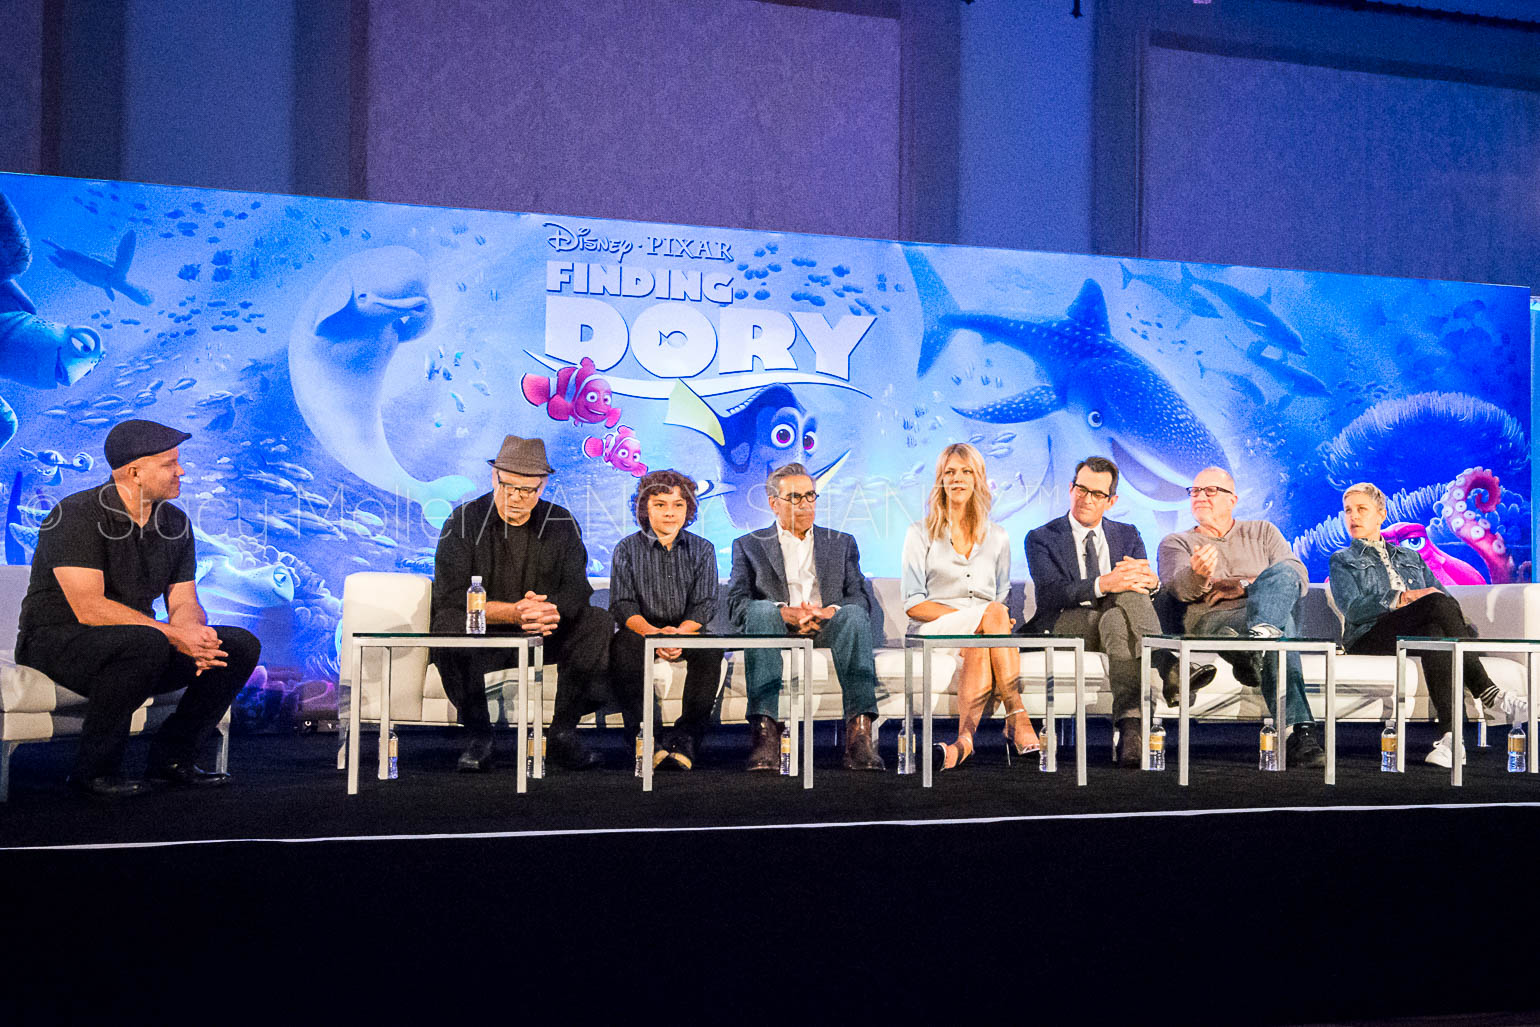 Finding Dory Press Conference